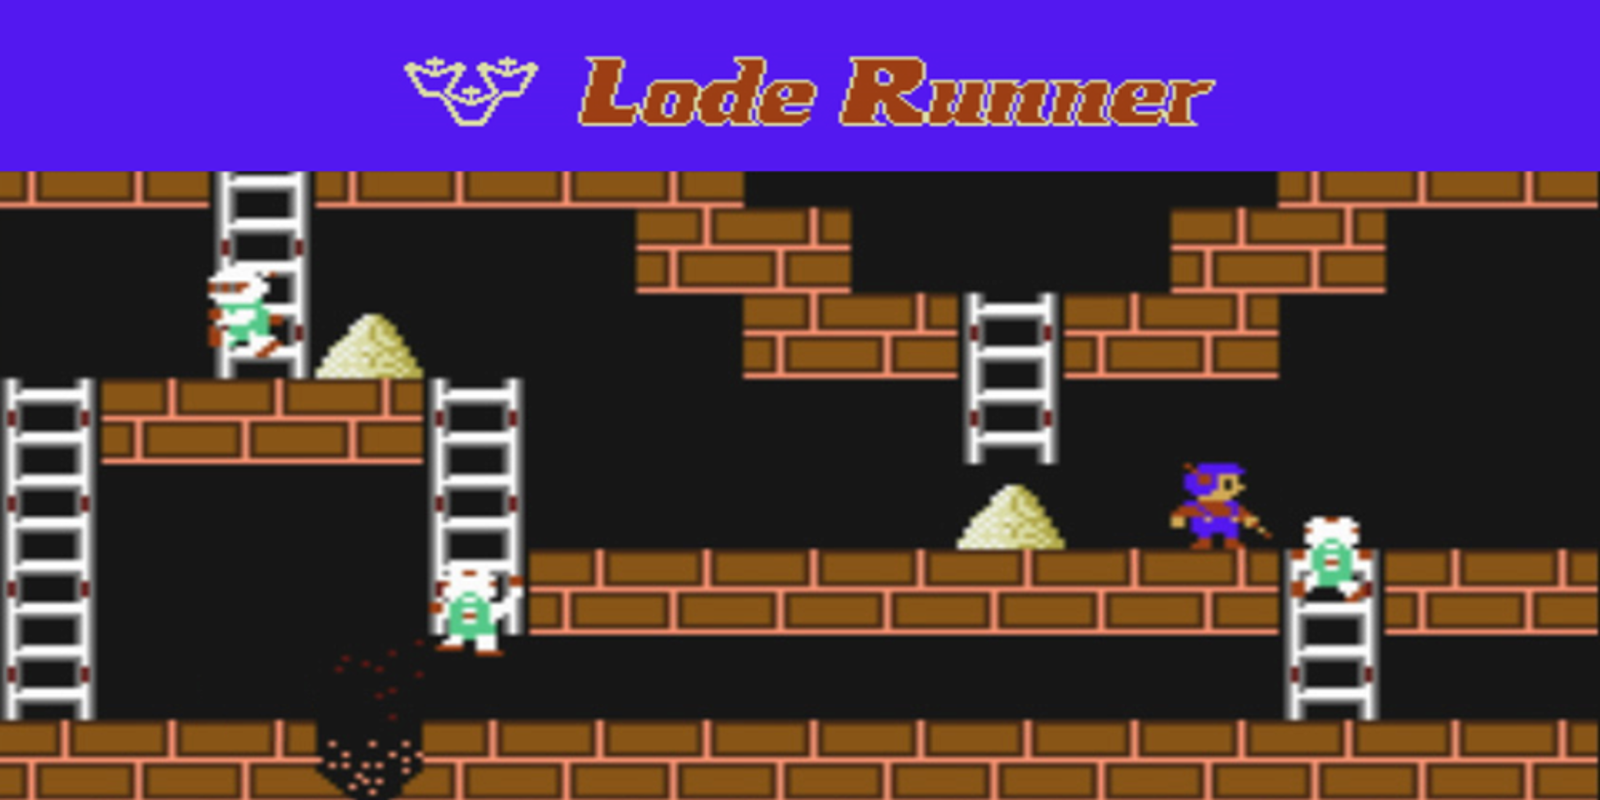 Lode runner free download for pc